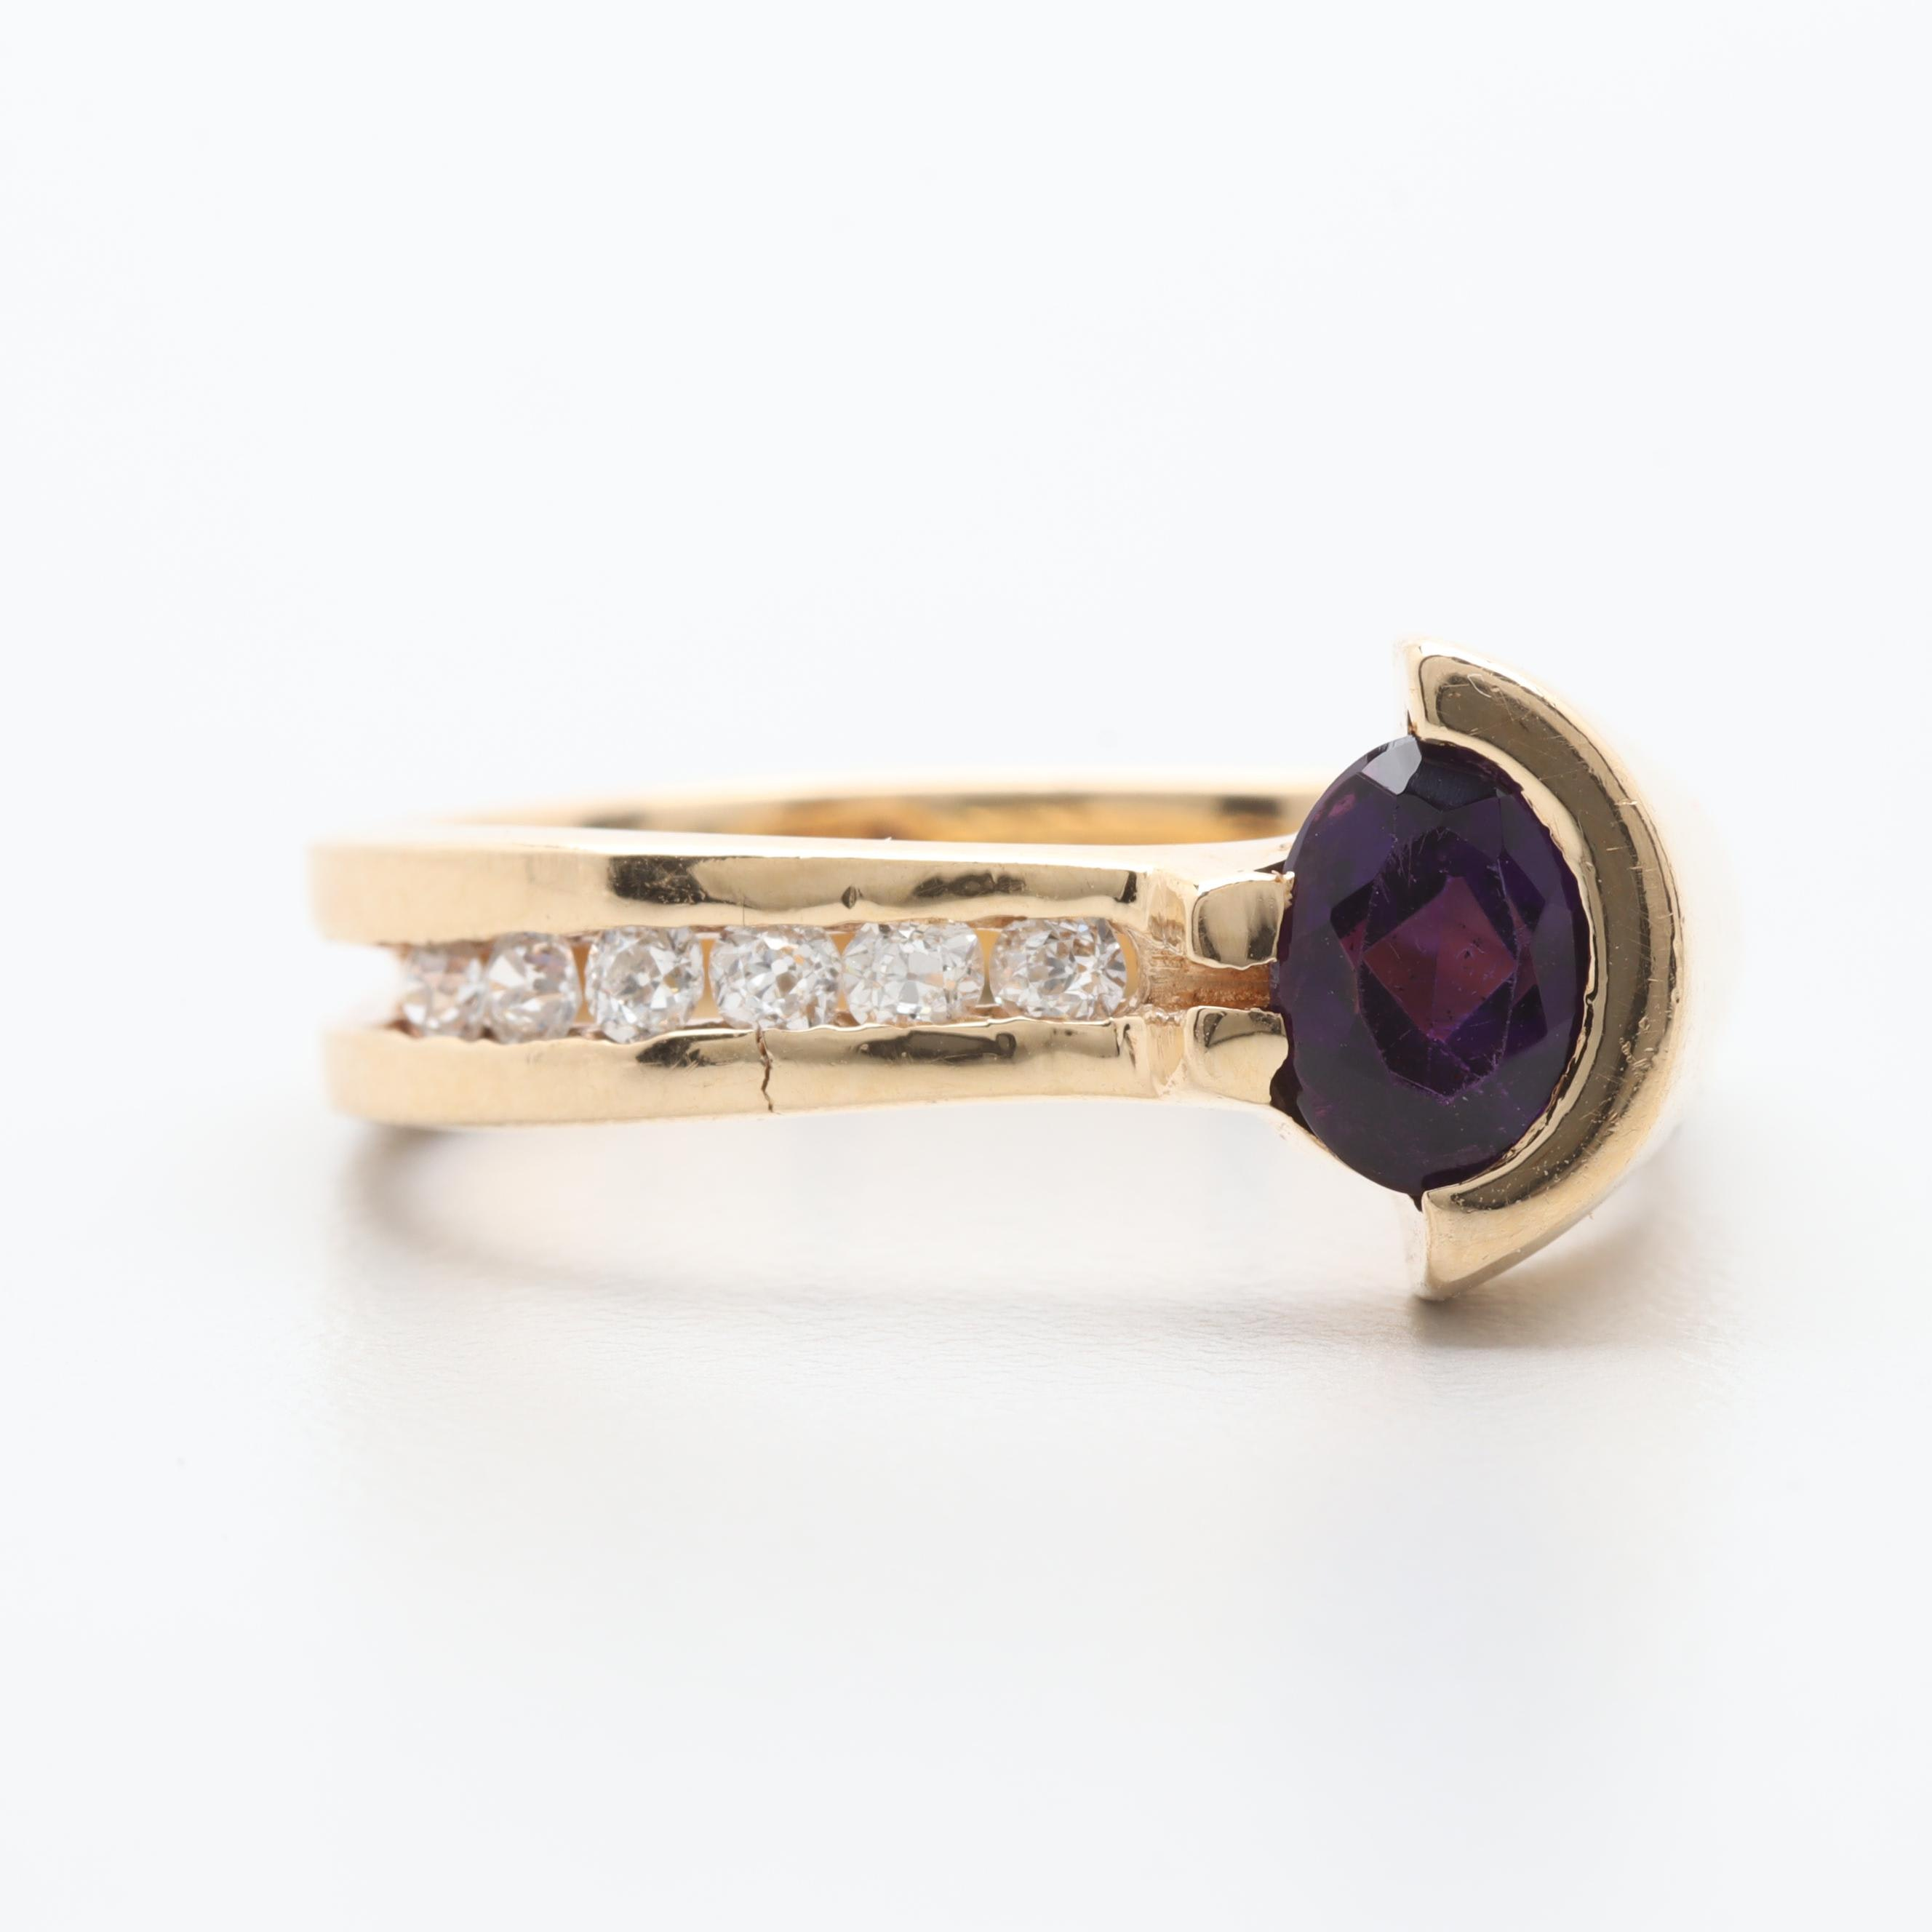 Contemporary 14K Yellow Gold Amethyst and Diamond Ring